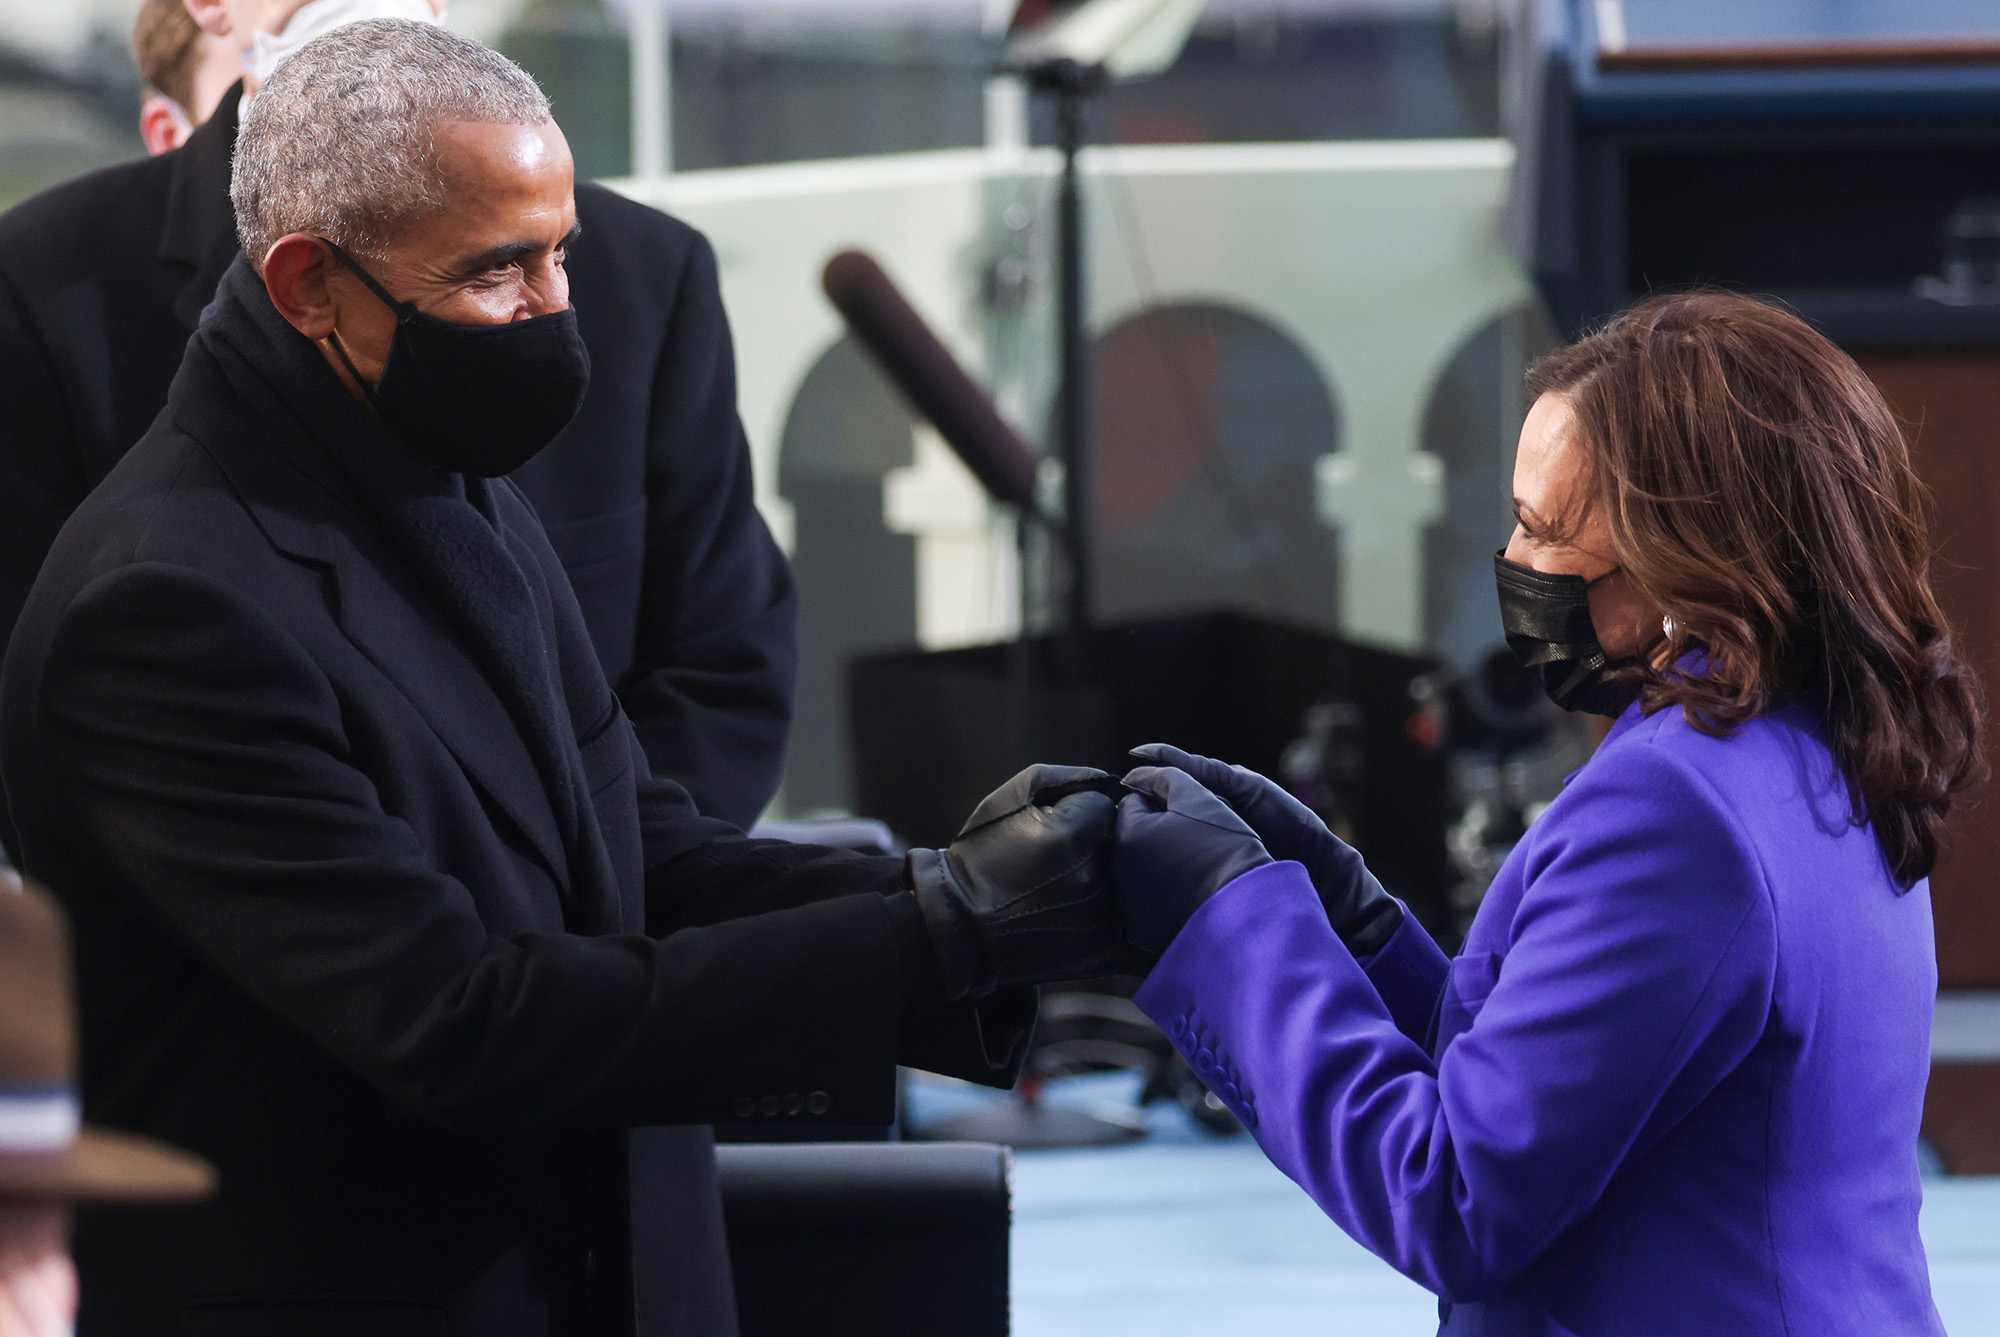 Former President Barack Obama, left, bumps fists with Vice President-elect Kamala Harris as they arrive for the inauguration of Joe Biden as the 46th president on the West Front of the Capitol in Washington on Jan. 20, 2021. (Jonathan Ernst/Pool, AFP via Getty Images)